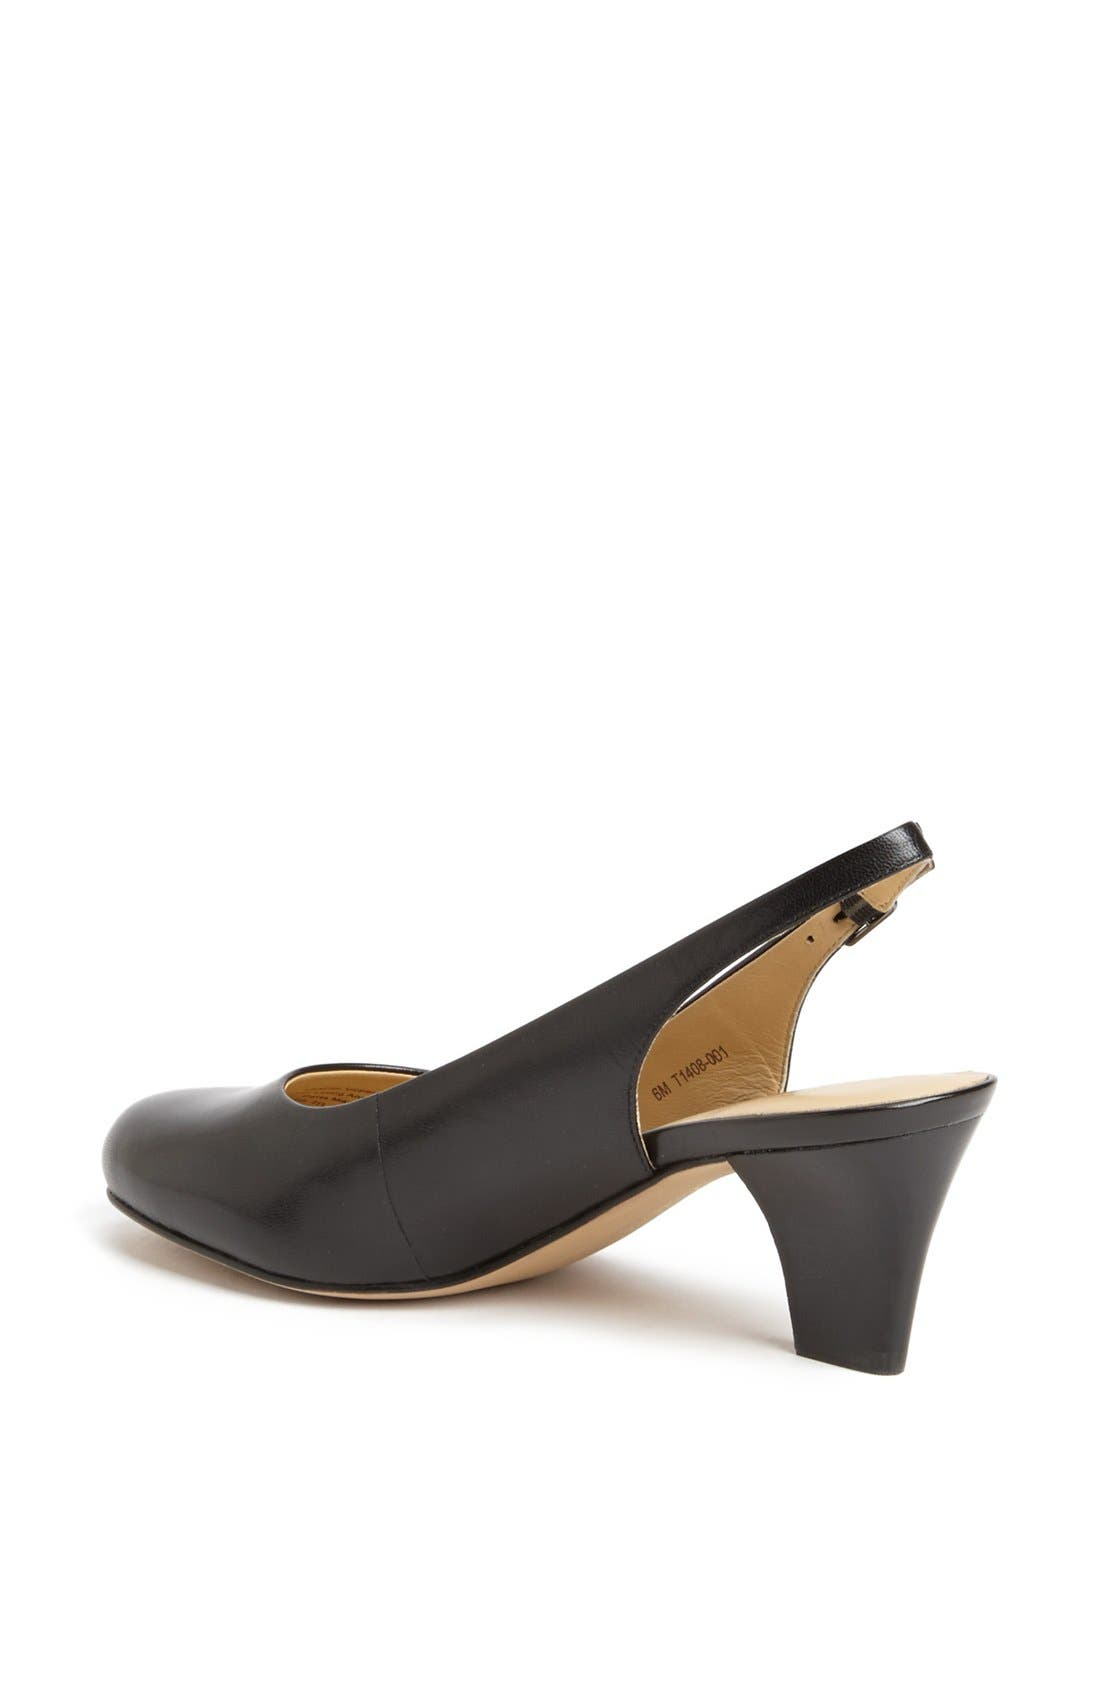 'Pella' Slingback Pump,                             Alternate thumbnail 2, color,                             001